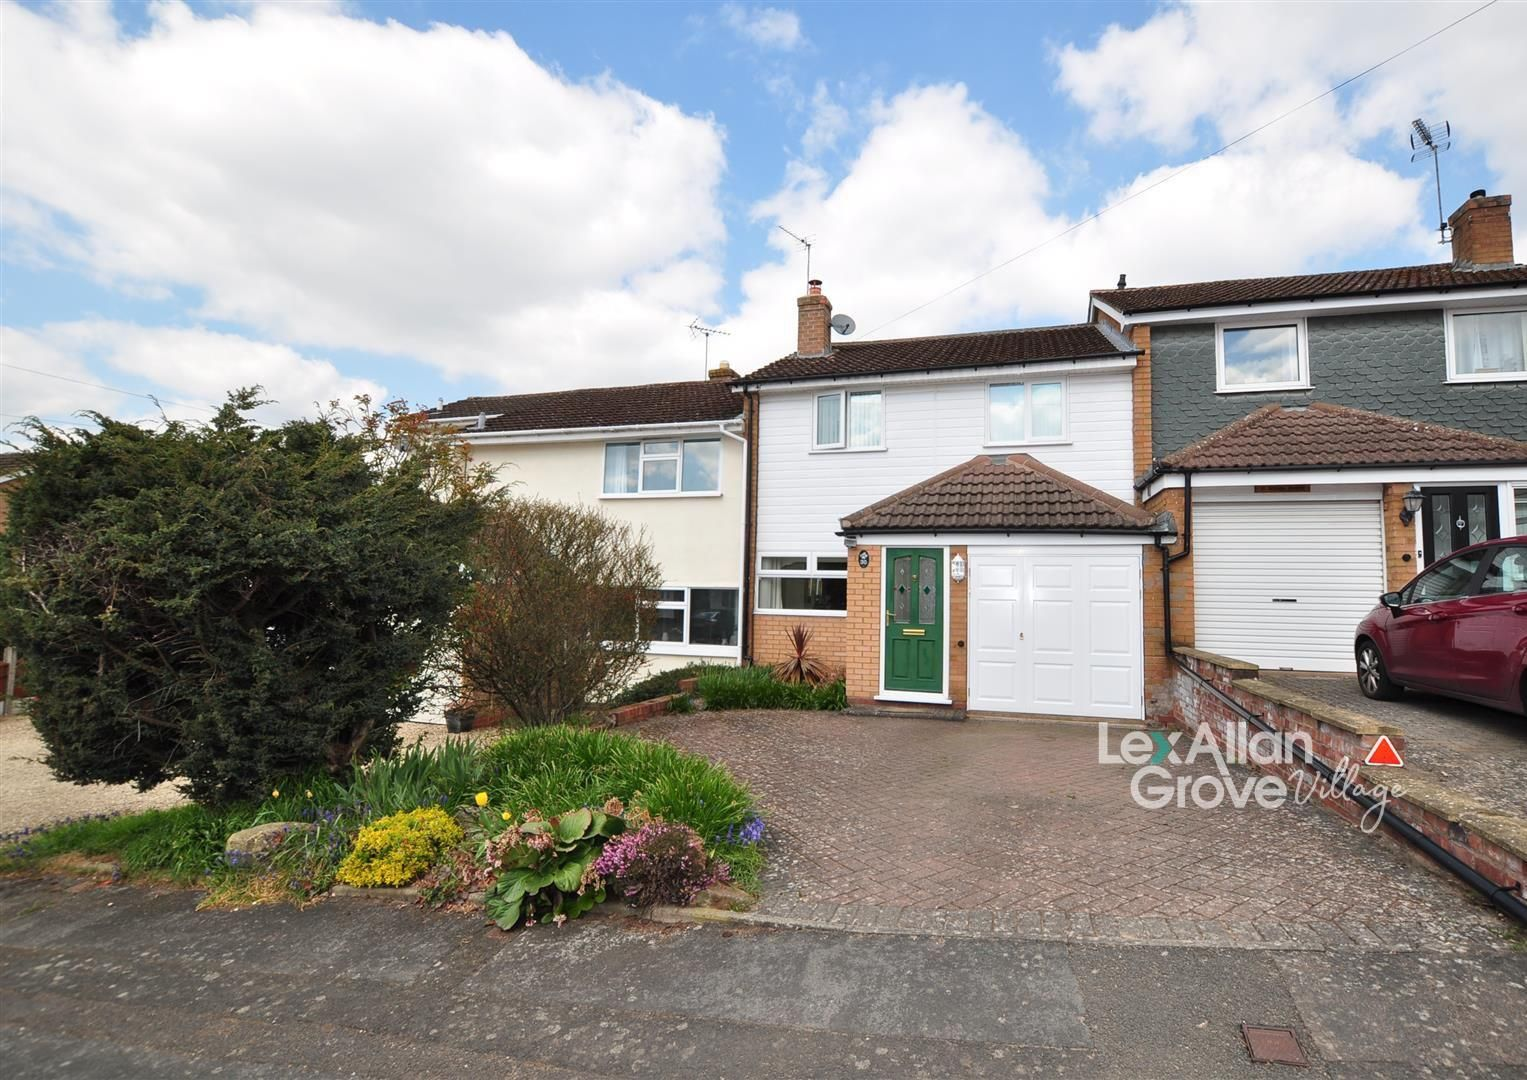 3 bed house for sale in Hagley, DY9